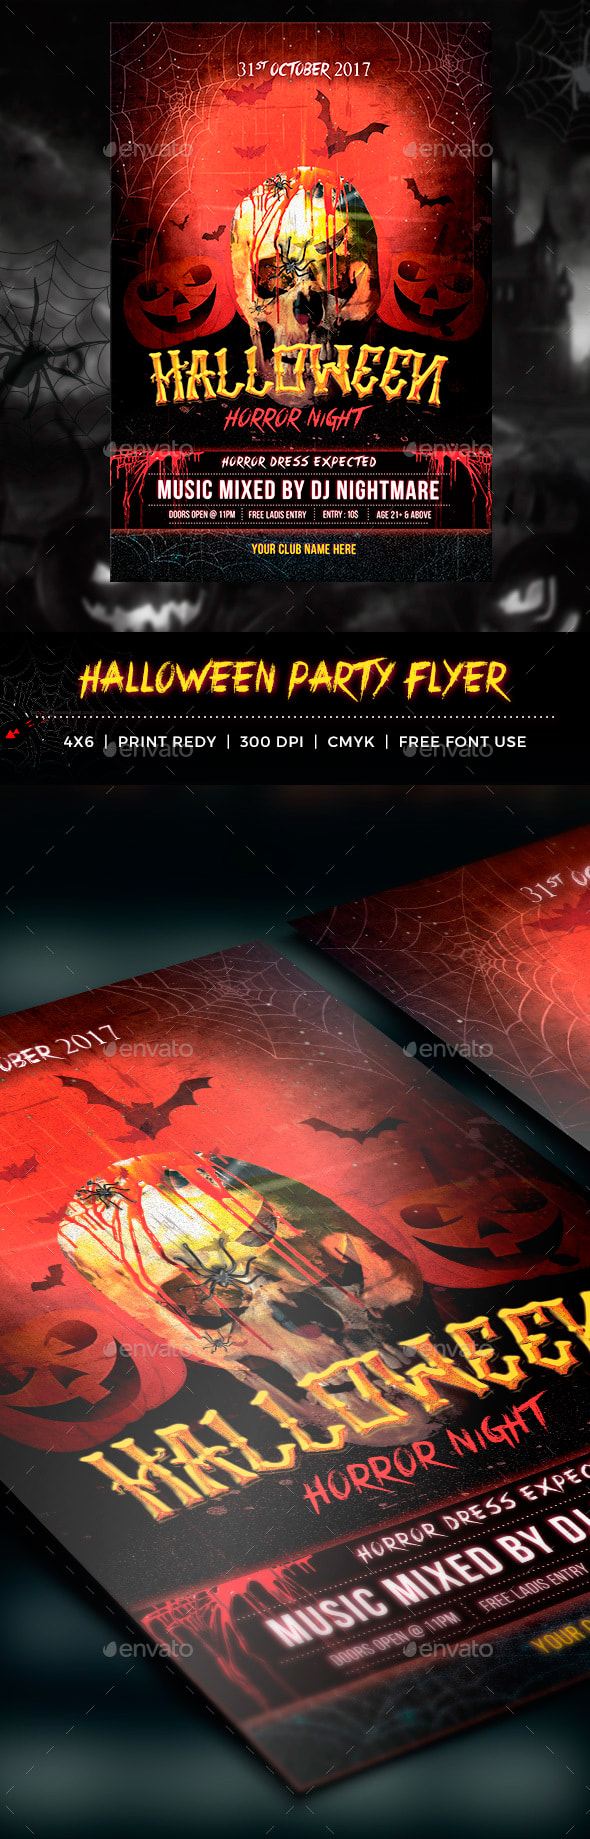 Halloween Flyers Banners And Ads October 2018 Wp Daddy